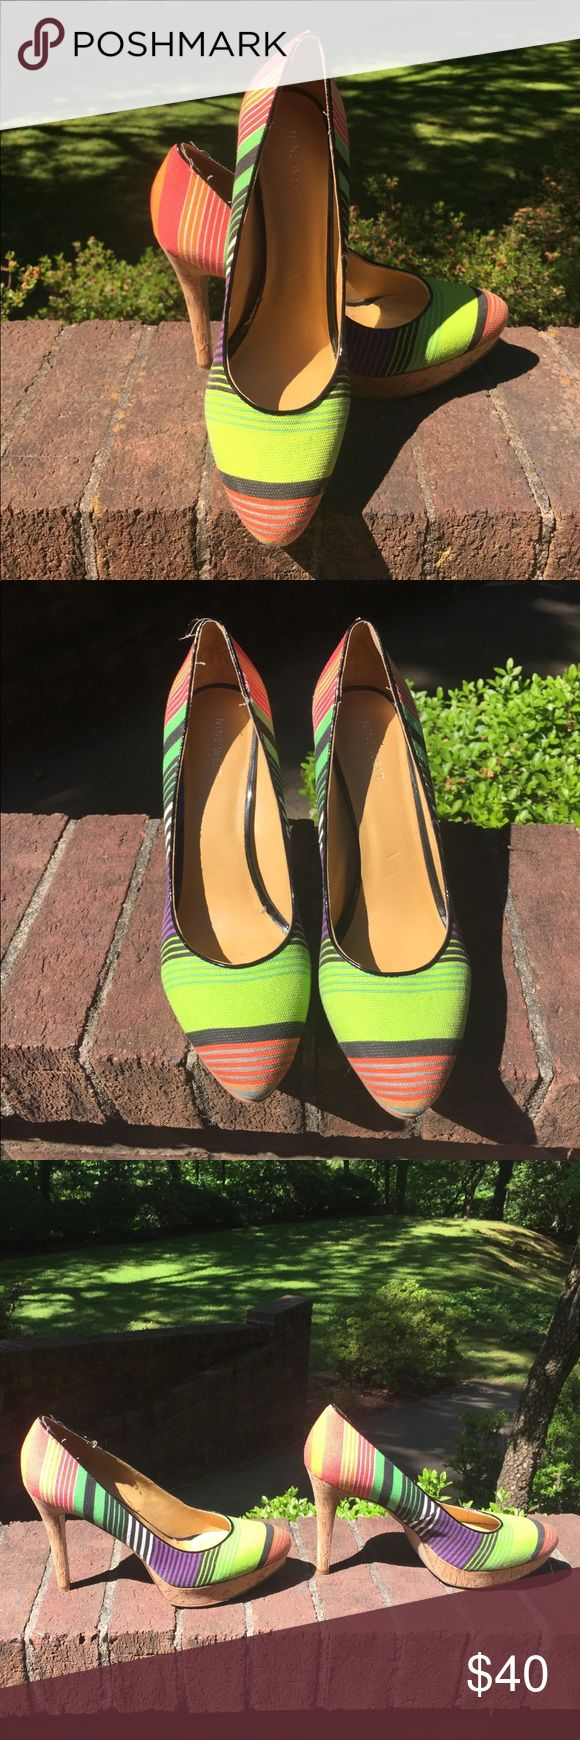 Funky & fun neon stripe pumps by Nine West! Gorgeous neon stripe Nine West pumps. Cork on the sole, fabric-type stripes on the upper. Almond toe pump- great as a pop of color with a little black dress or paired with skinny jeans or leggings! Wore them a few times but they are a half size too big for me. Nine West Shoes Heels